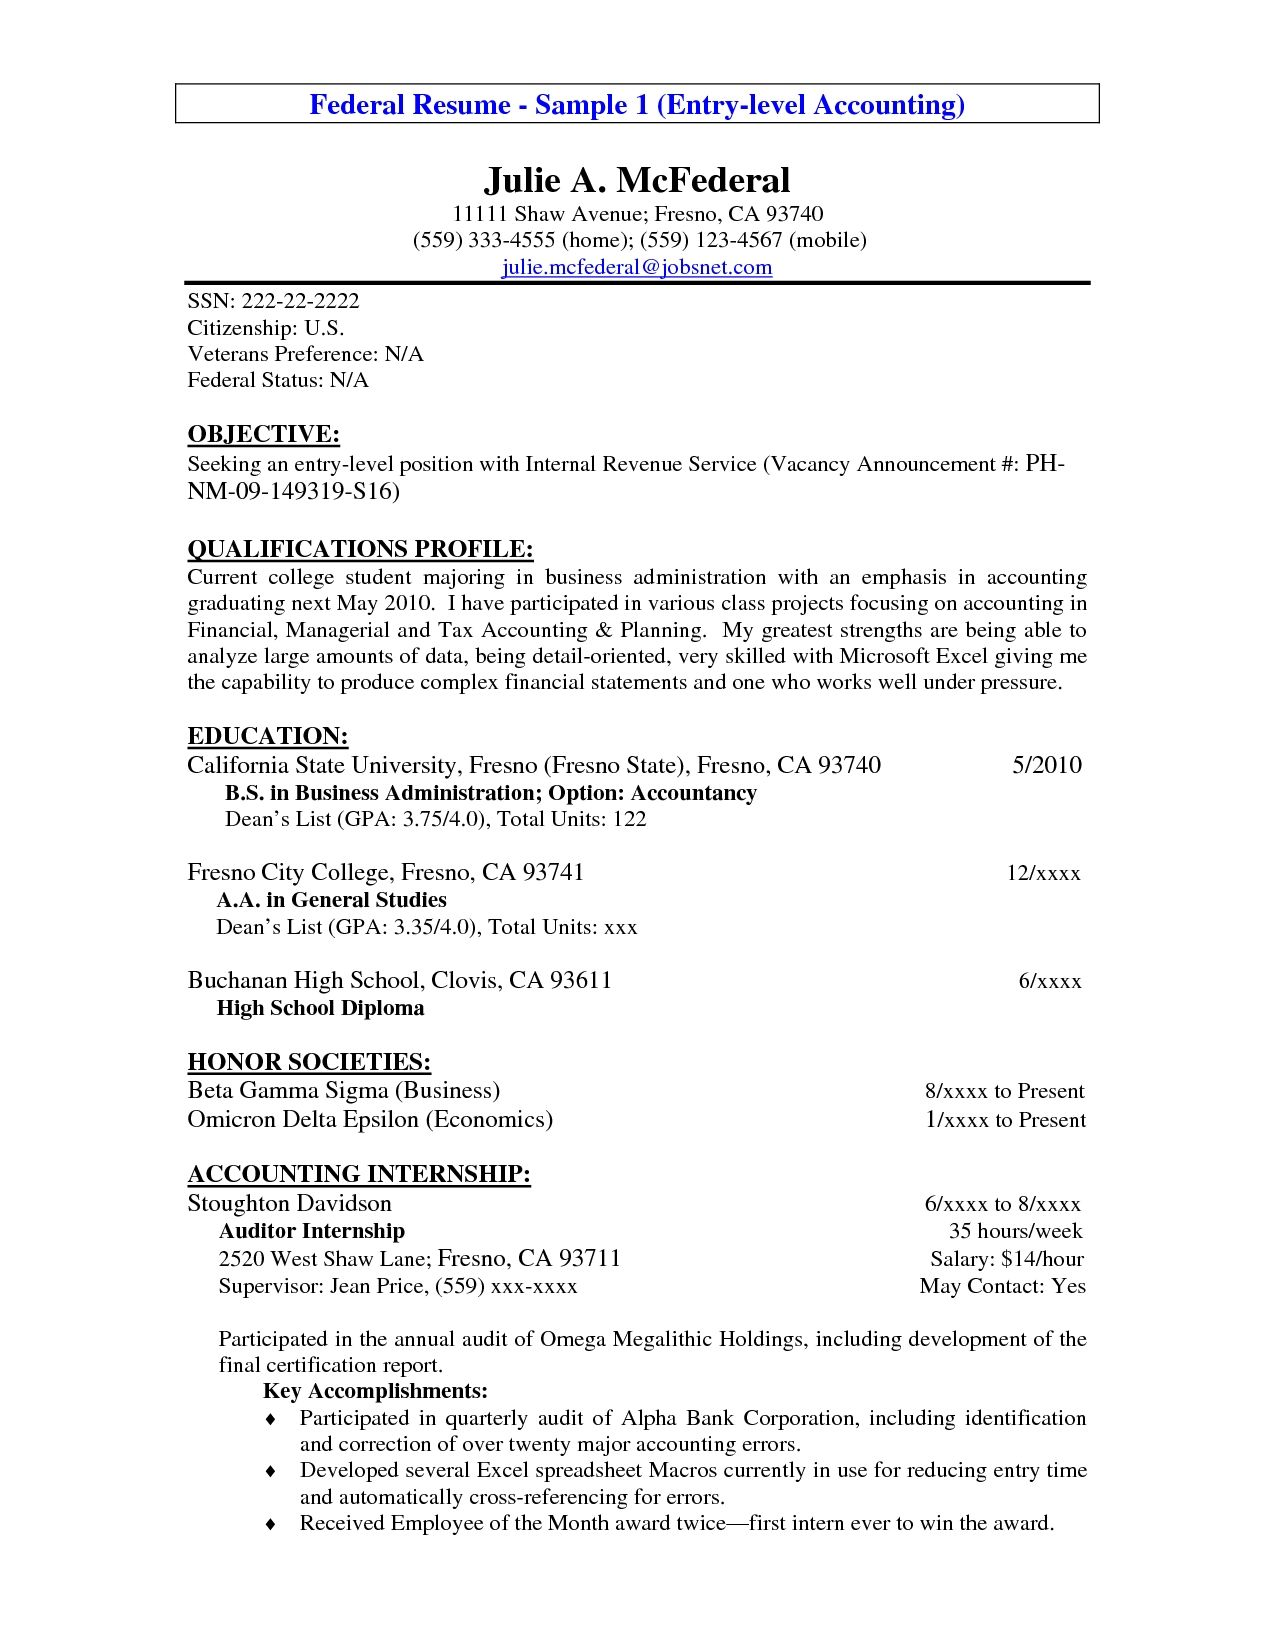 Resume For Accounting Entry Level Resume Example Entry Level Accounting Resume Sample